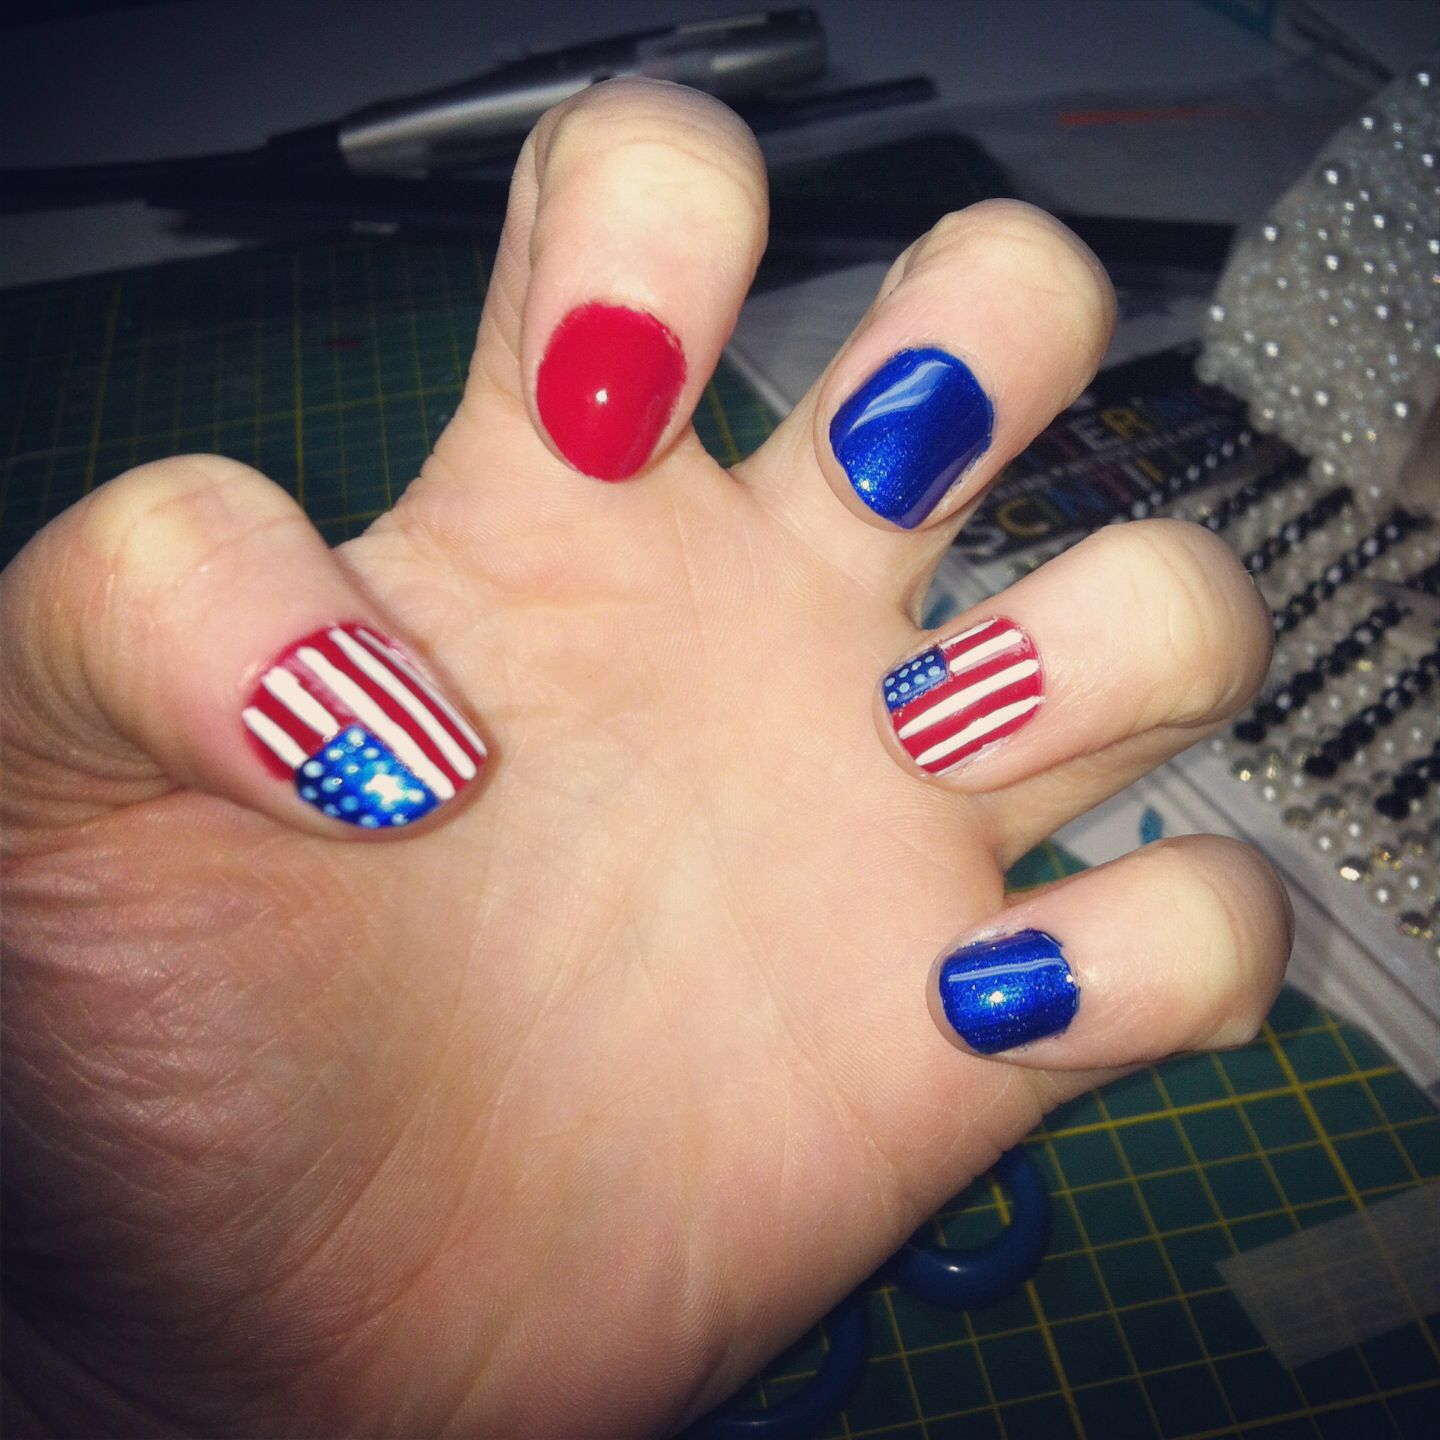 team usa nails